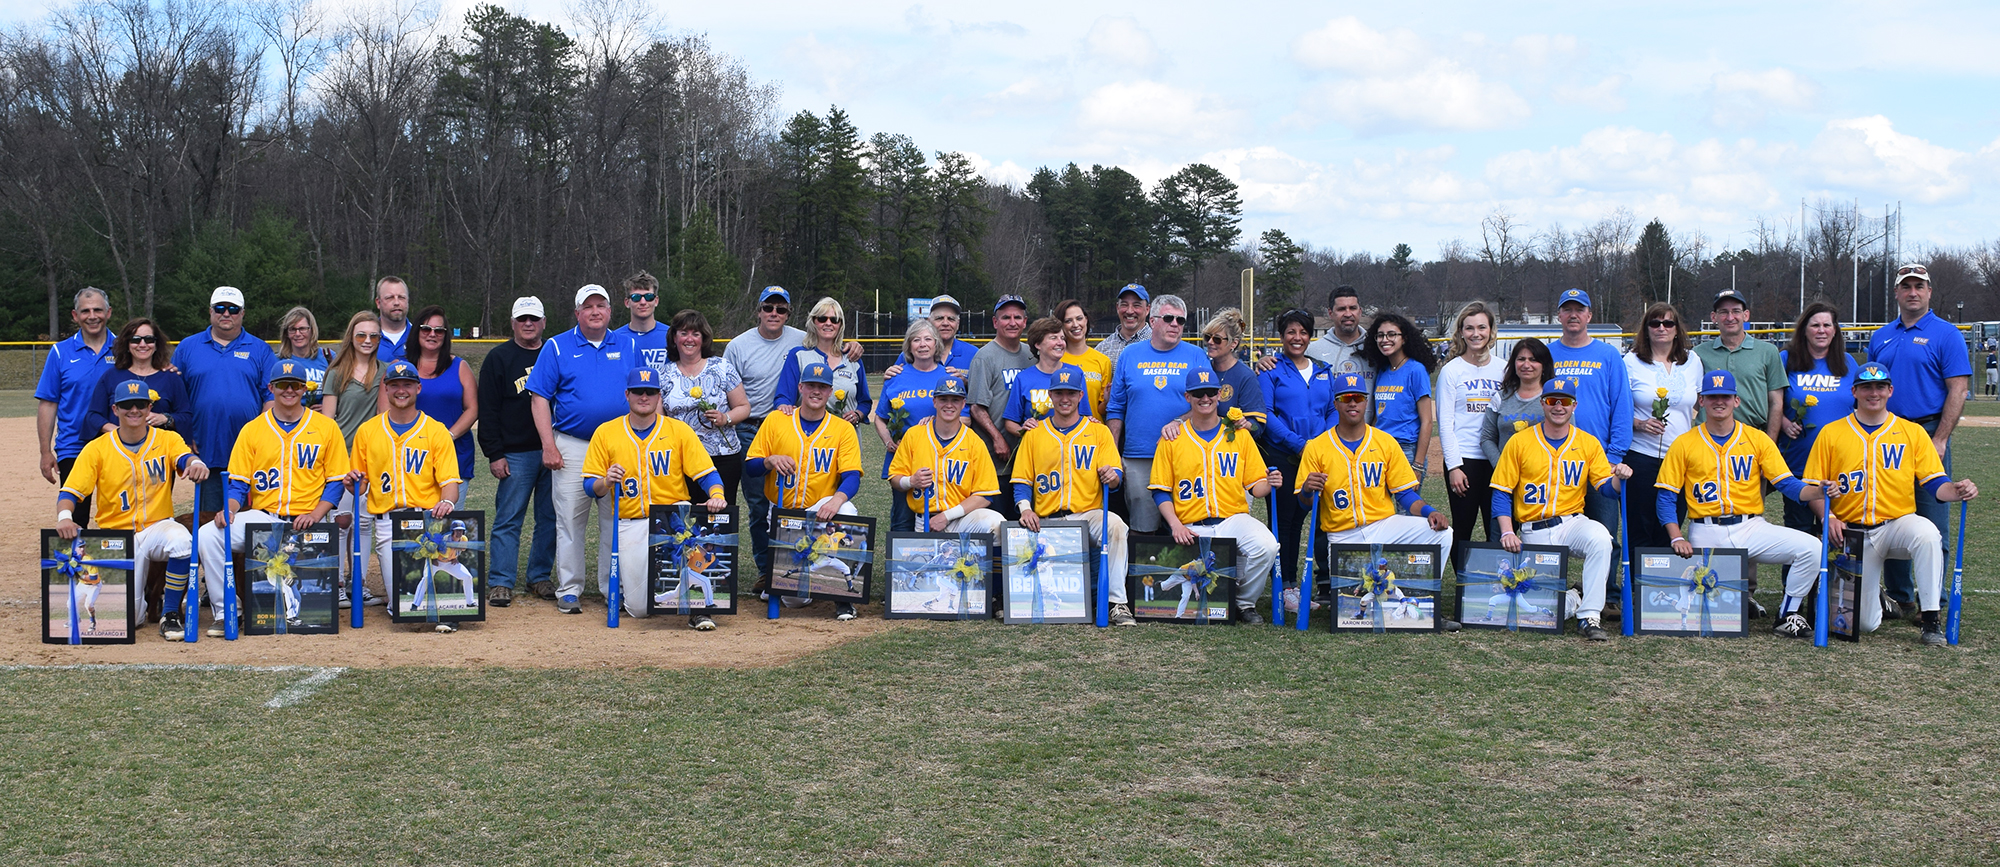 Western New England celebrated Senior Day with a pair of wins over Roger Williams on Saturday. (Photo by Rachael Margossian)